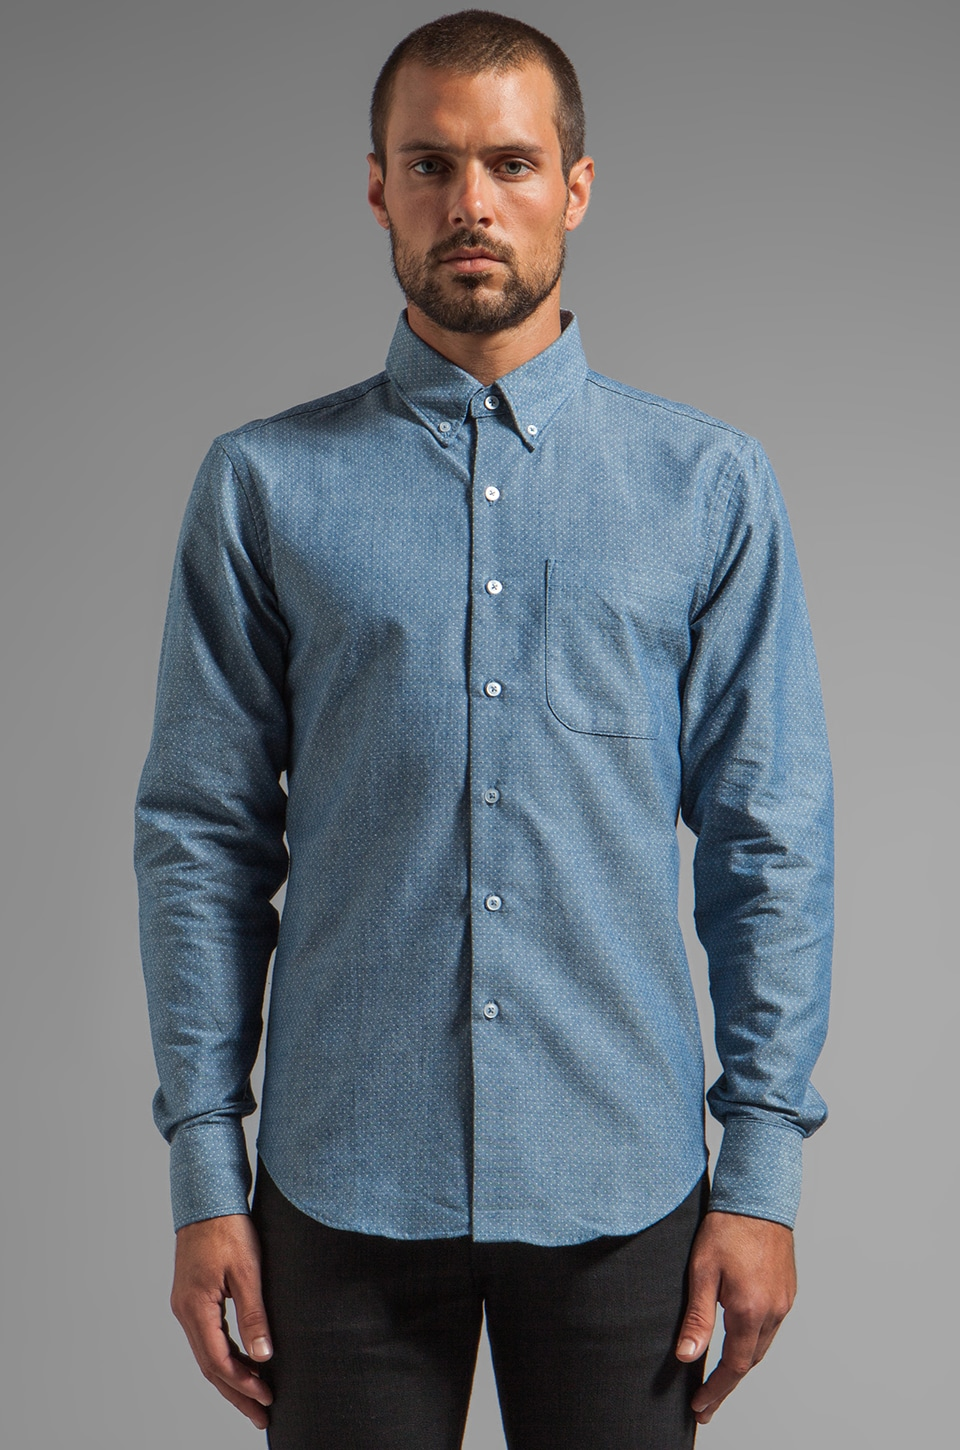 Naked & Famous Denim Regular Shirt Dobby Cloth Dots in Pale Blue